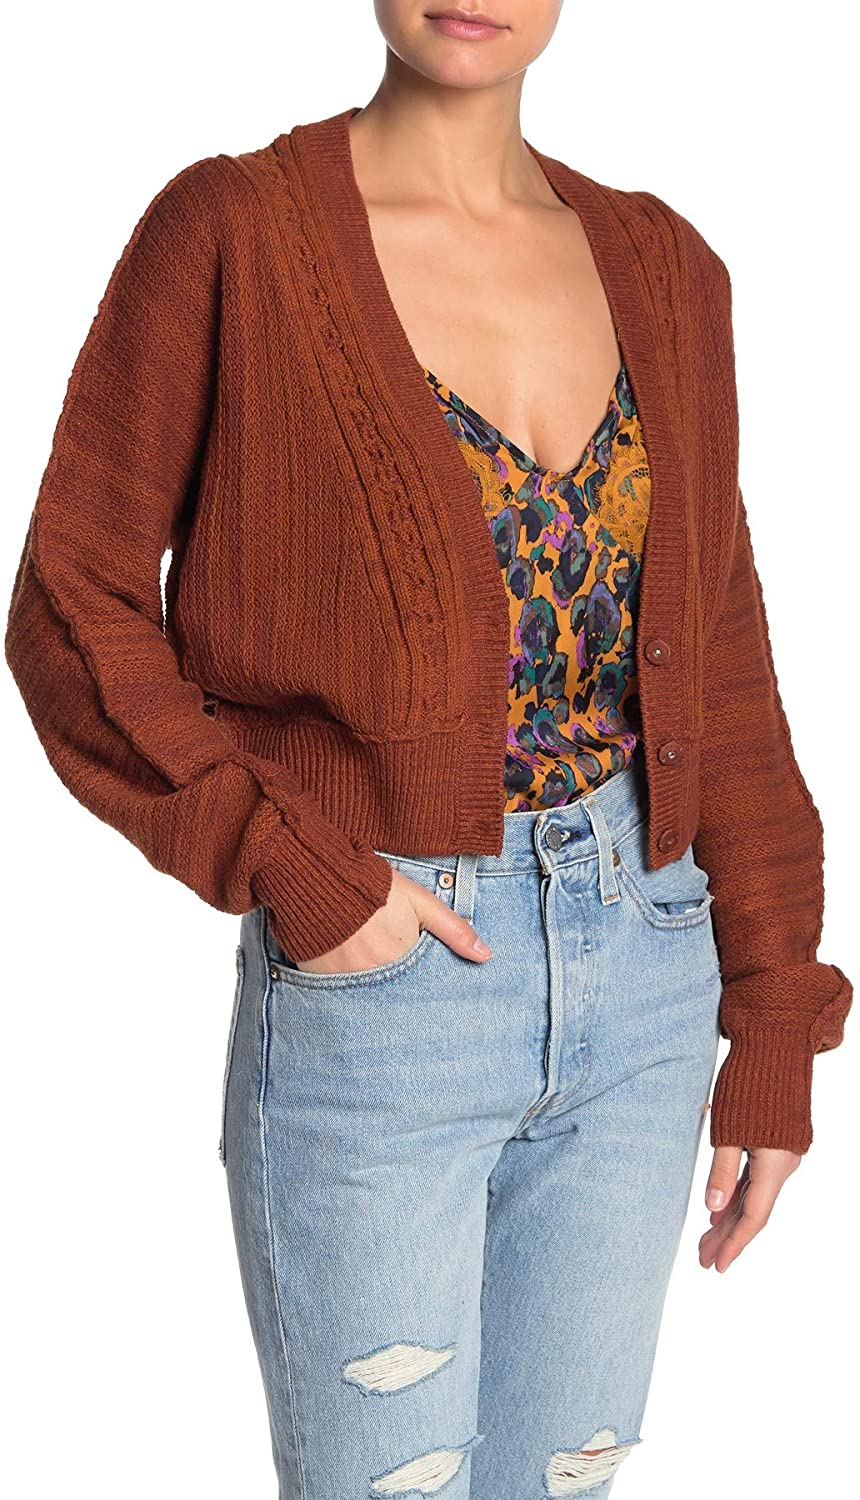 Free People Women's Moon River Cropped Cardigan Sweater in Sierra Combo Size Small